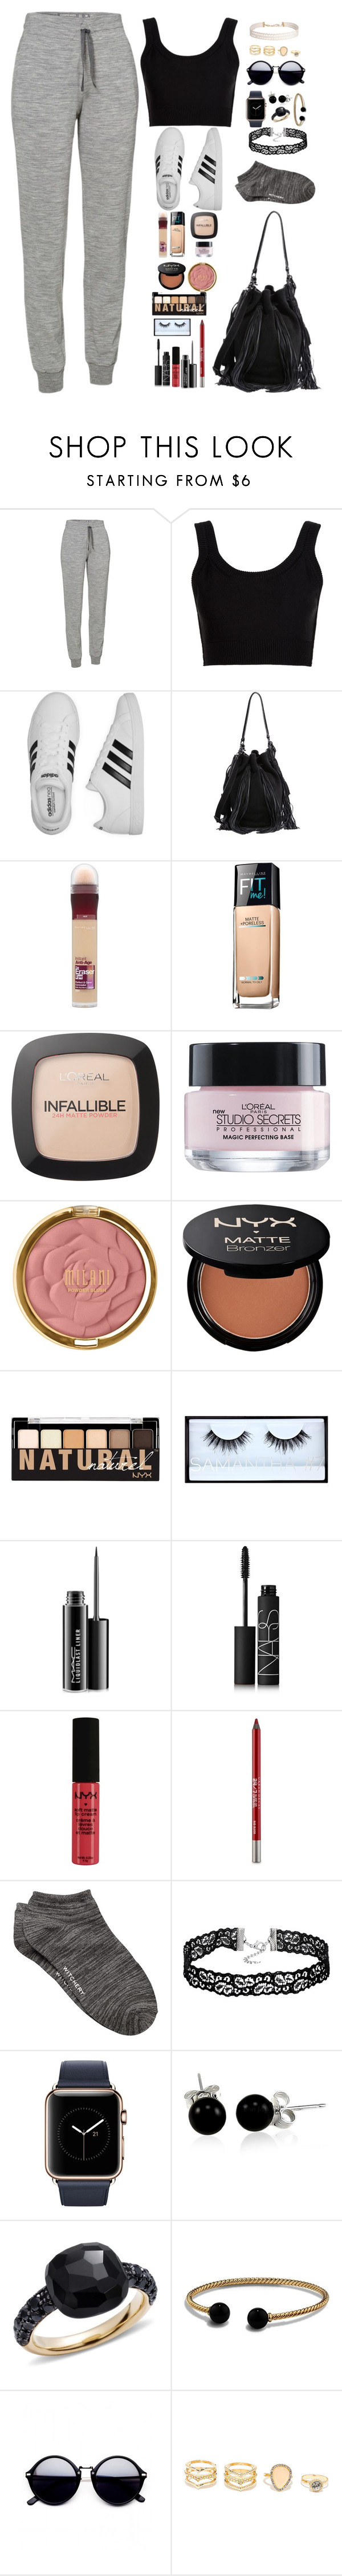 """""""Untitled #7458"""" by rebekah3383 ❤ liked on Polyvore featuring Icebreaker, Calvin Klein Collection, adidas, Loeffler Randall, Maybelline, L'Oréal Paris, Milani, NYX, Huda Beauty and MAC Cosmetics"""